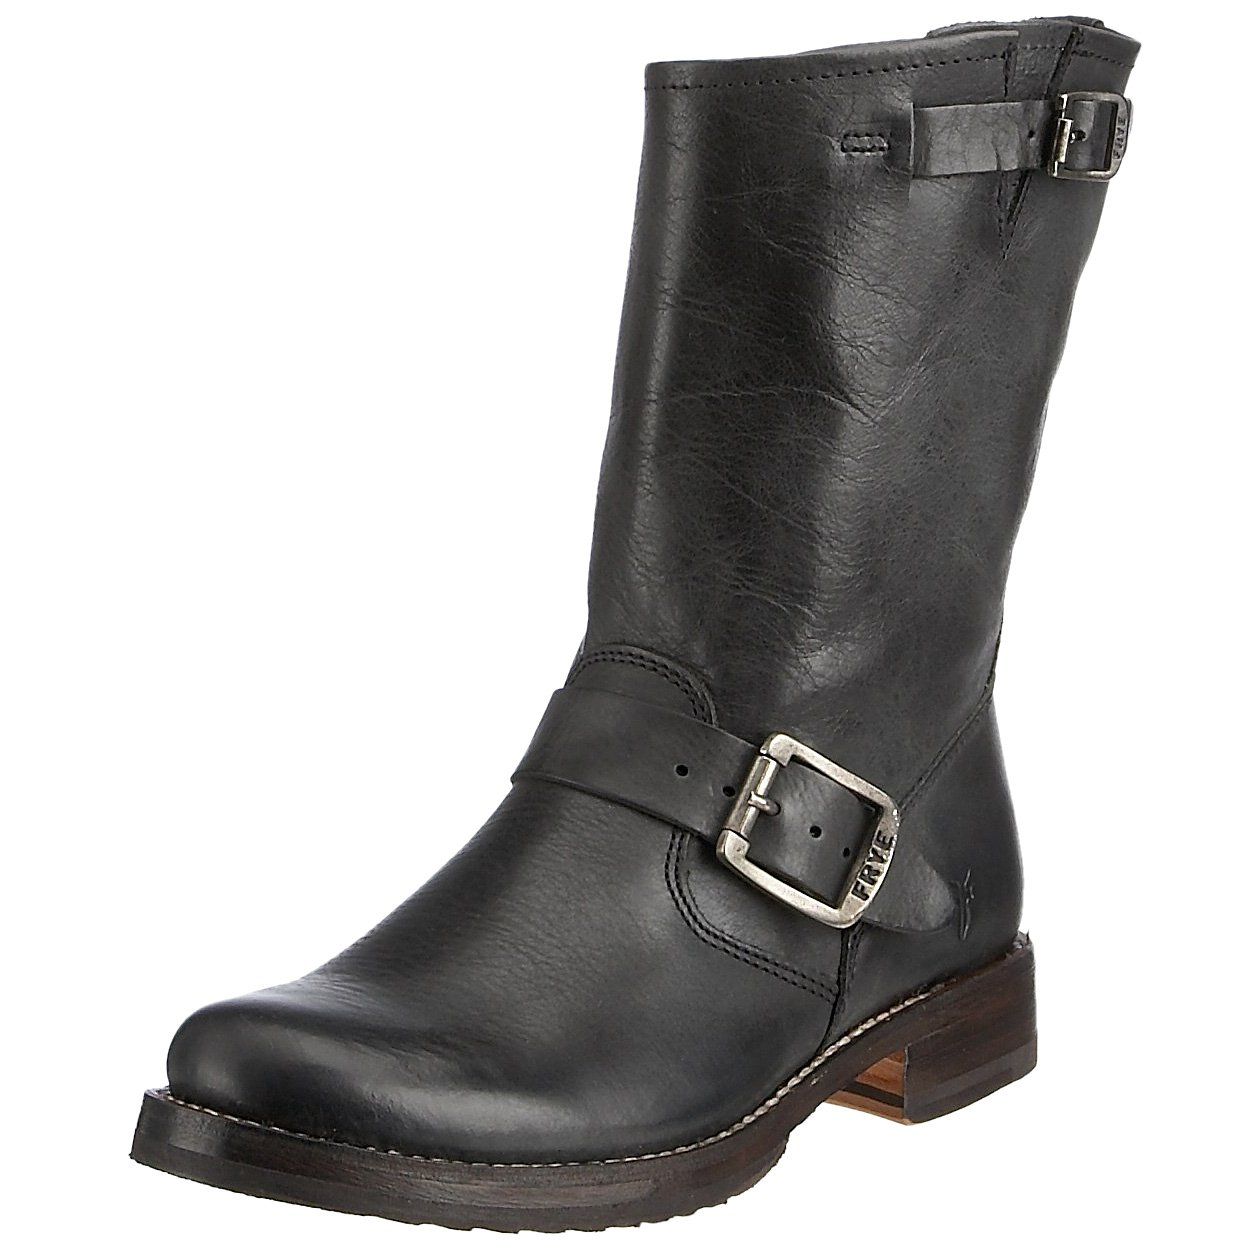 FRYE Women's Veronica Short Boot B000S5PT4E 10 B(M) US|Black Tumbled Full Grain-77510